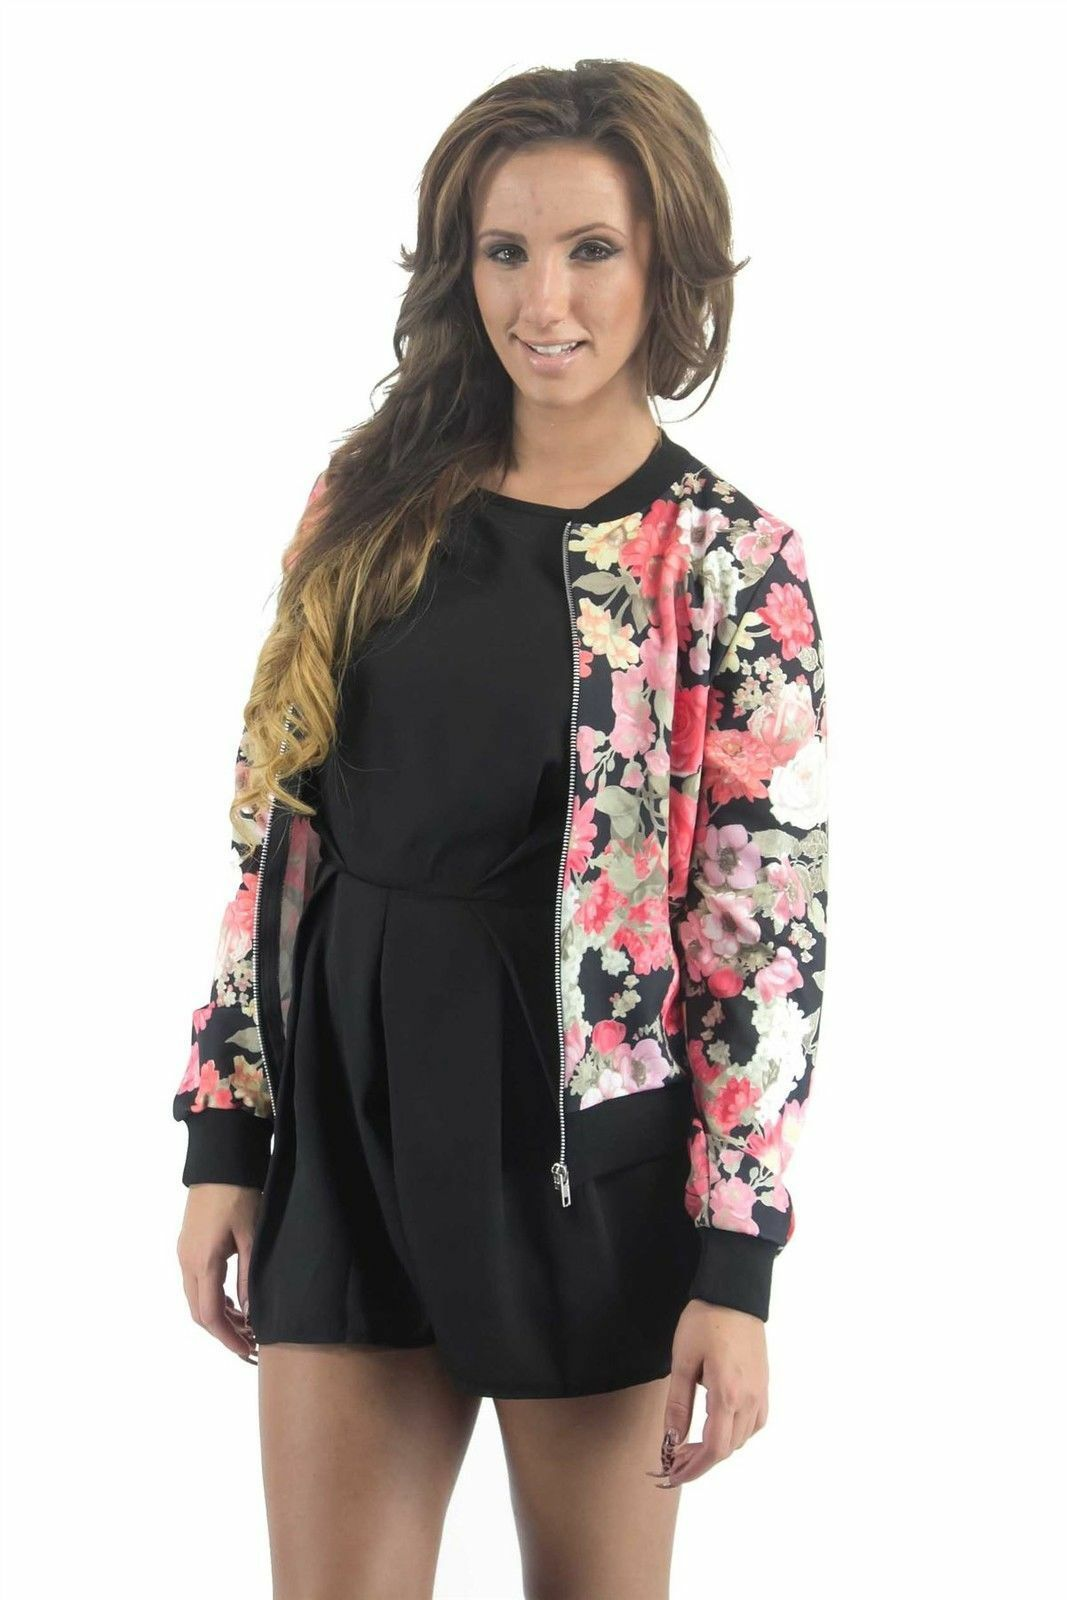 How to Wear a Women's Bomber Jacket in Style | eBay